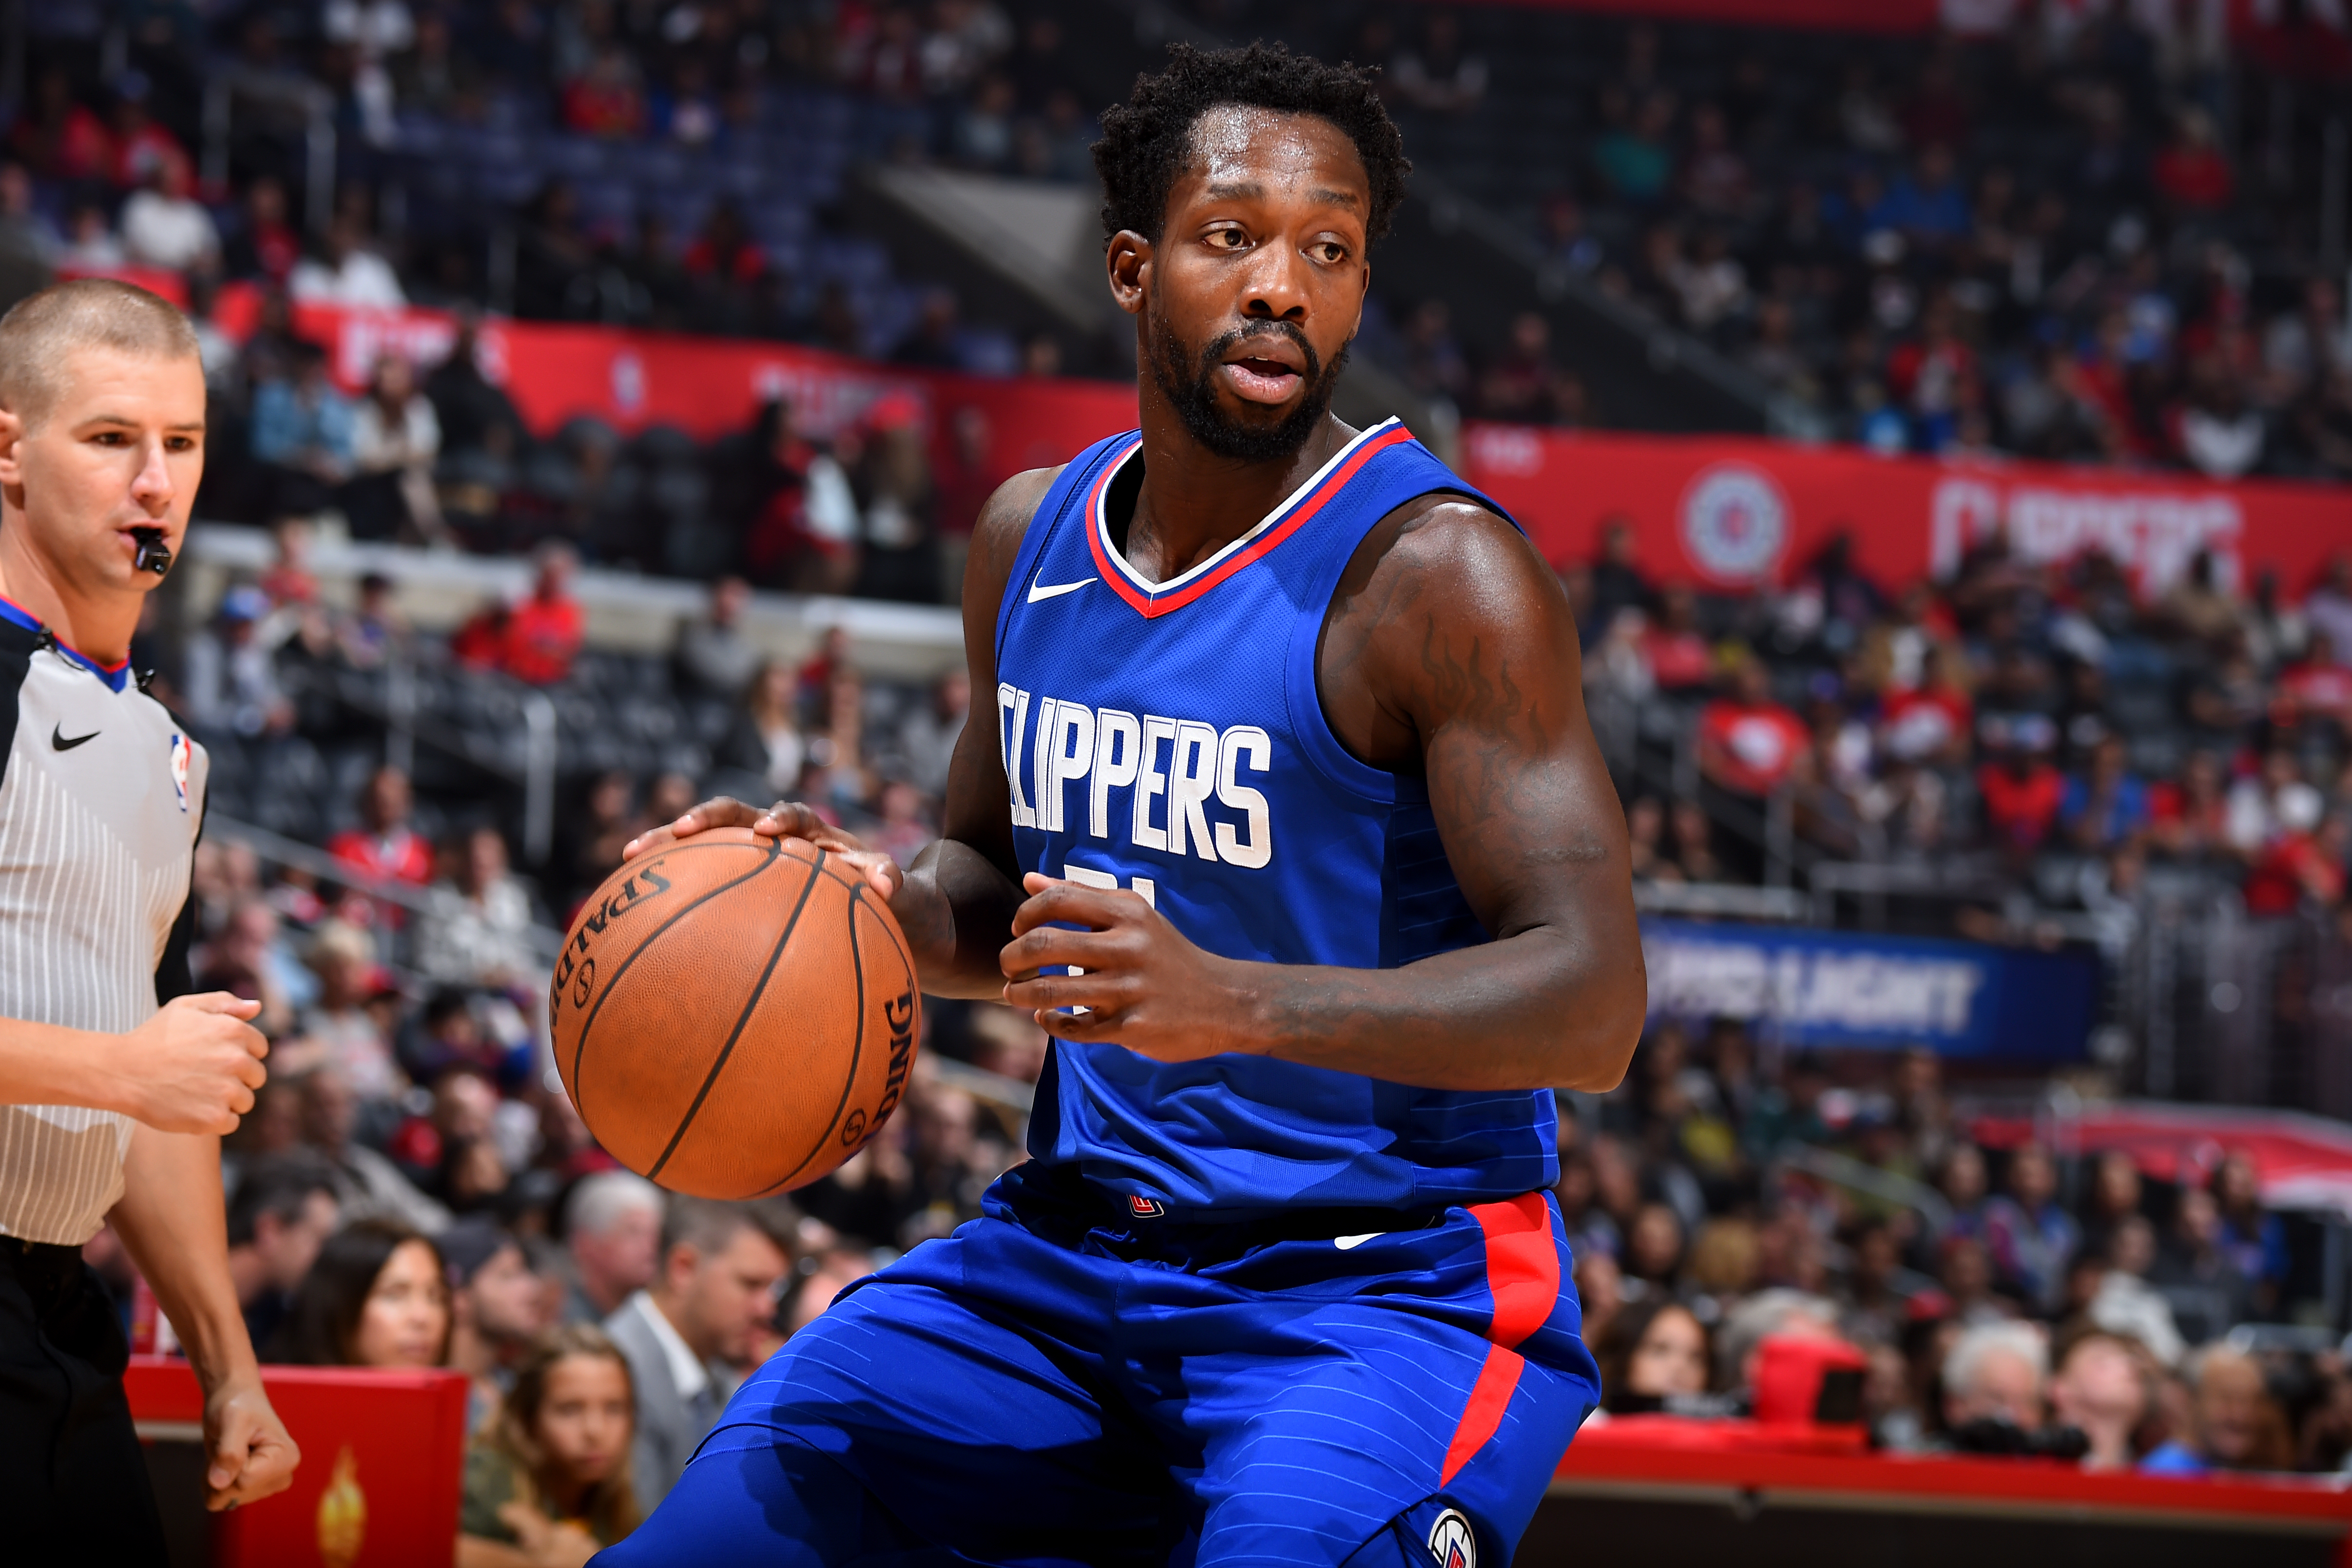 e67d9cde3 Patrick Beverley out for season after knee surgery